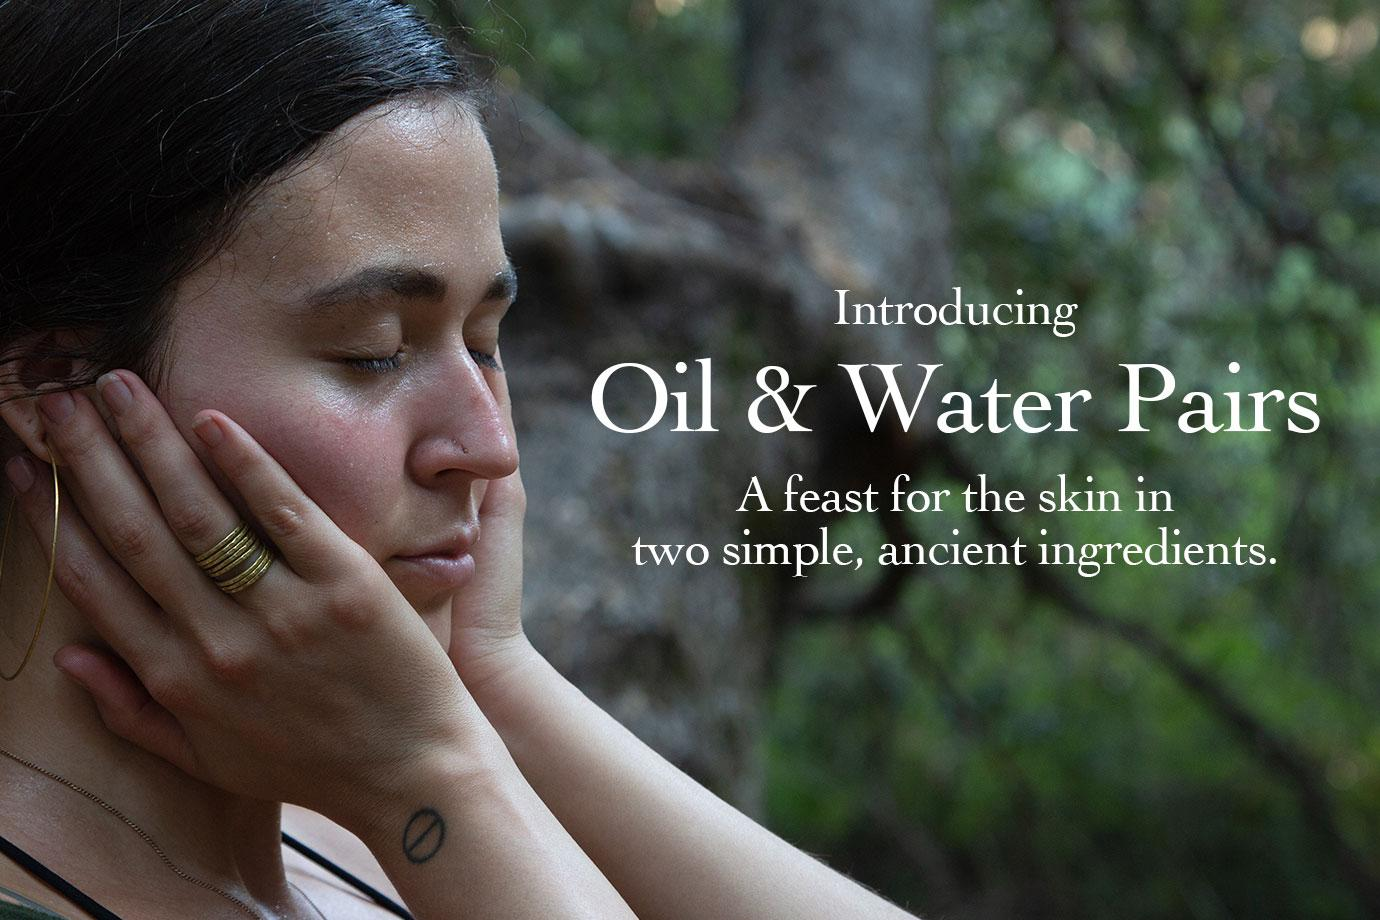 Introducing our Oil and Water Pairs - evanhealy